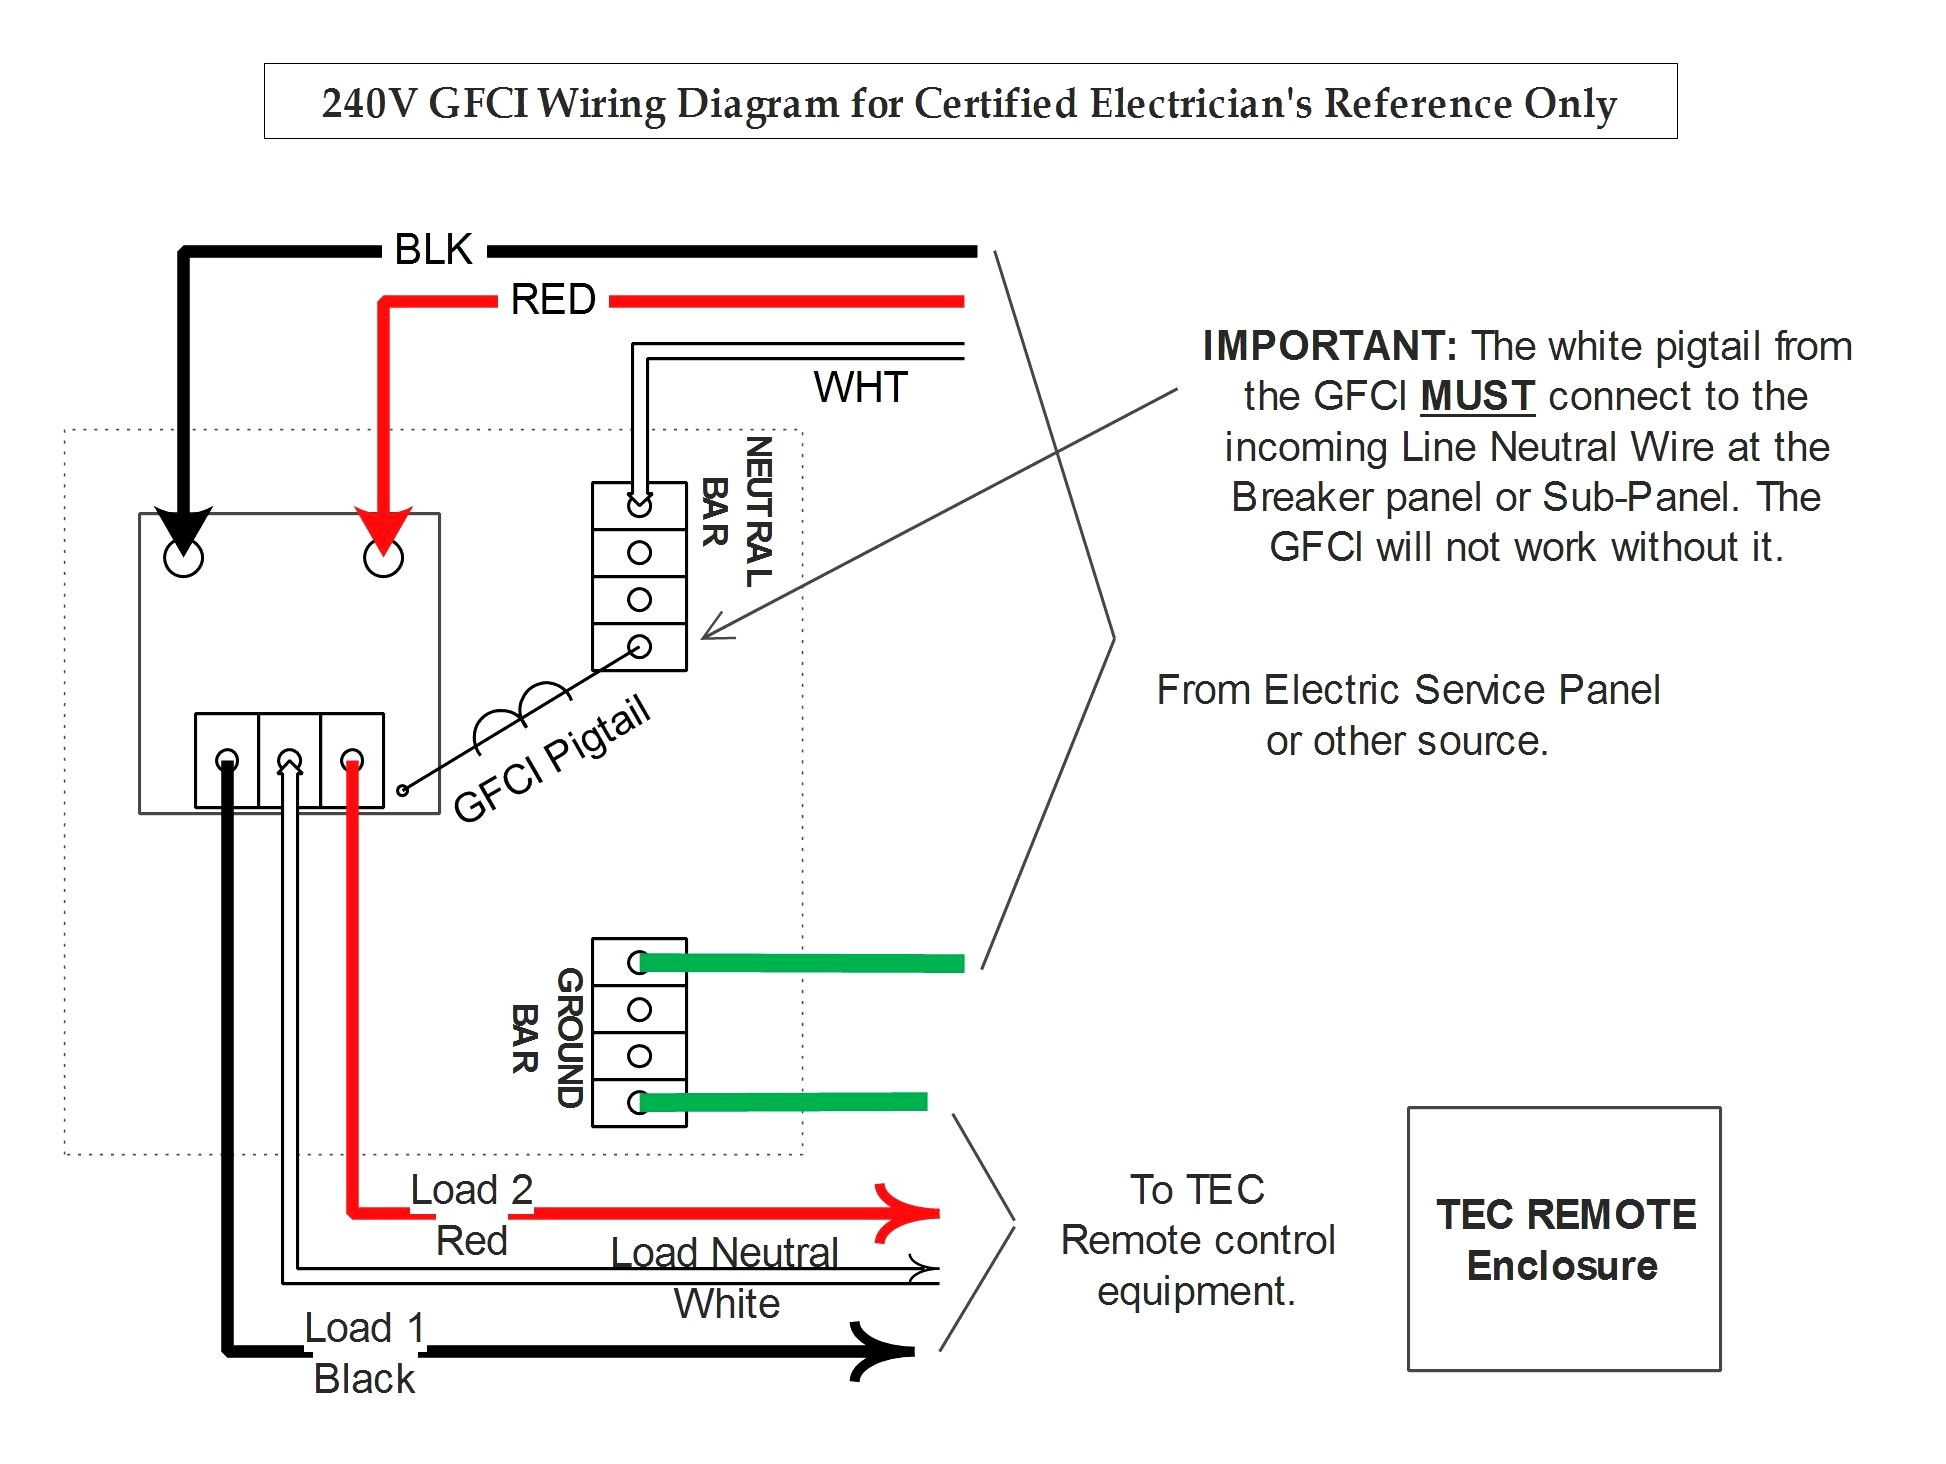 boat lift motor wiring diagram sample. Black Bedroom Furniture Sets. Home Design Ideas